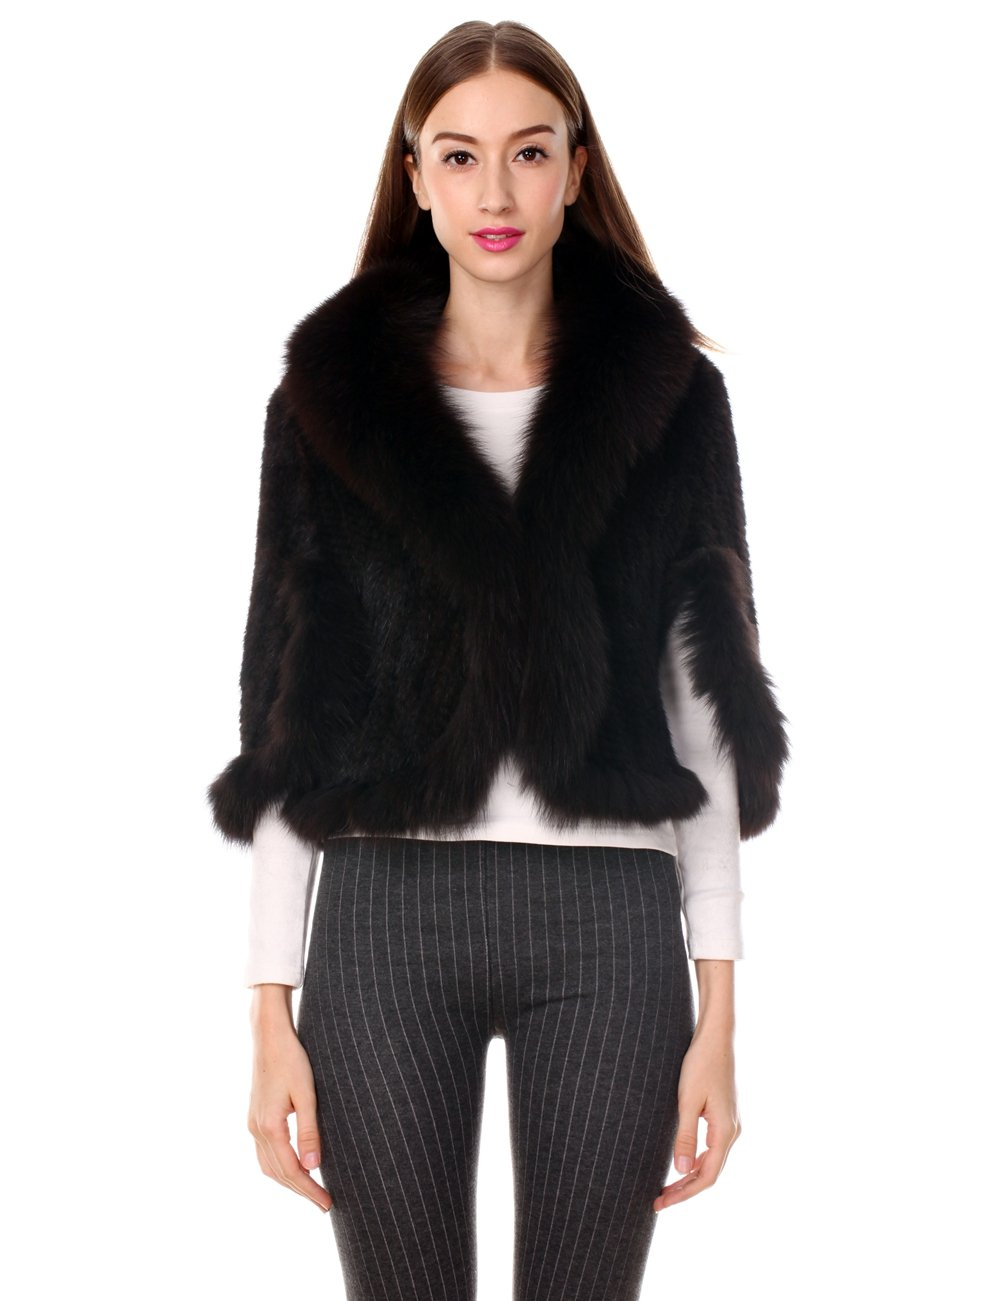 Ferand Real Knitted Mink Fur Stole with Fox Fur Collar, One Size Fits All for Women, Brown